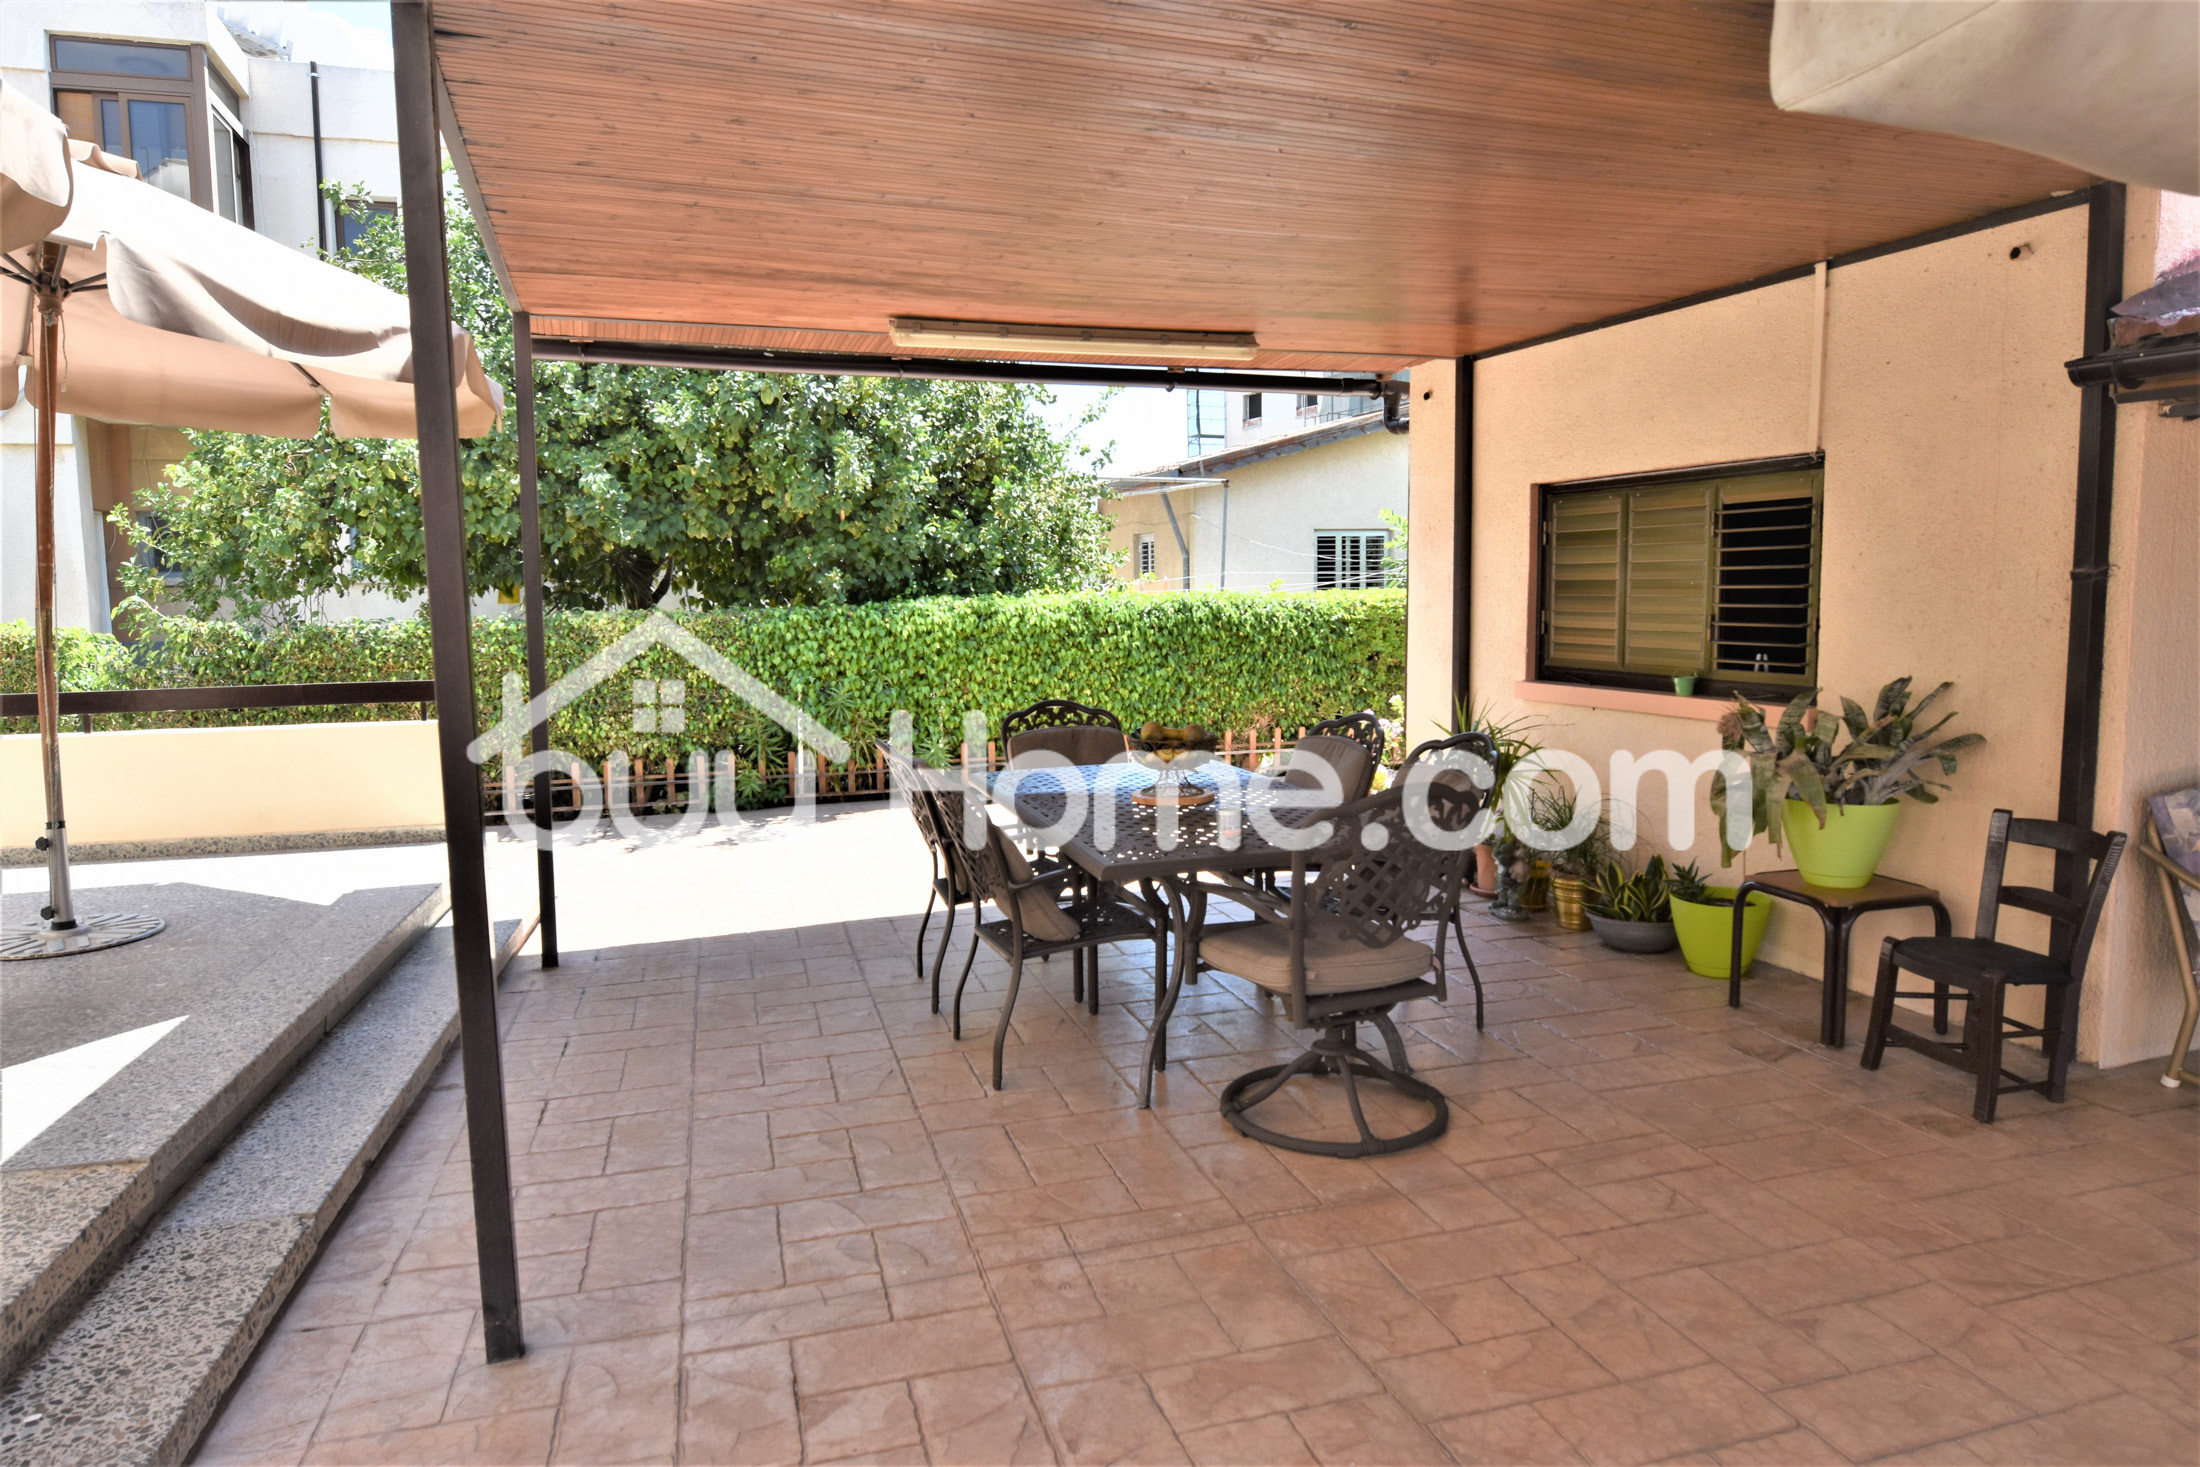 3 Bedroom House on Large Plot | BuyHome